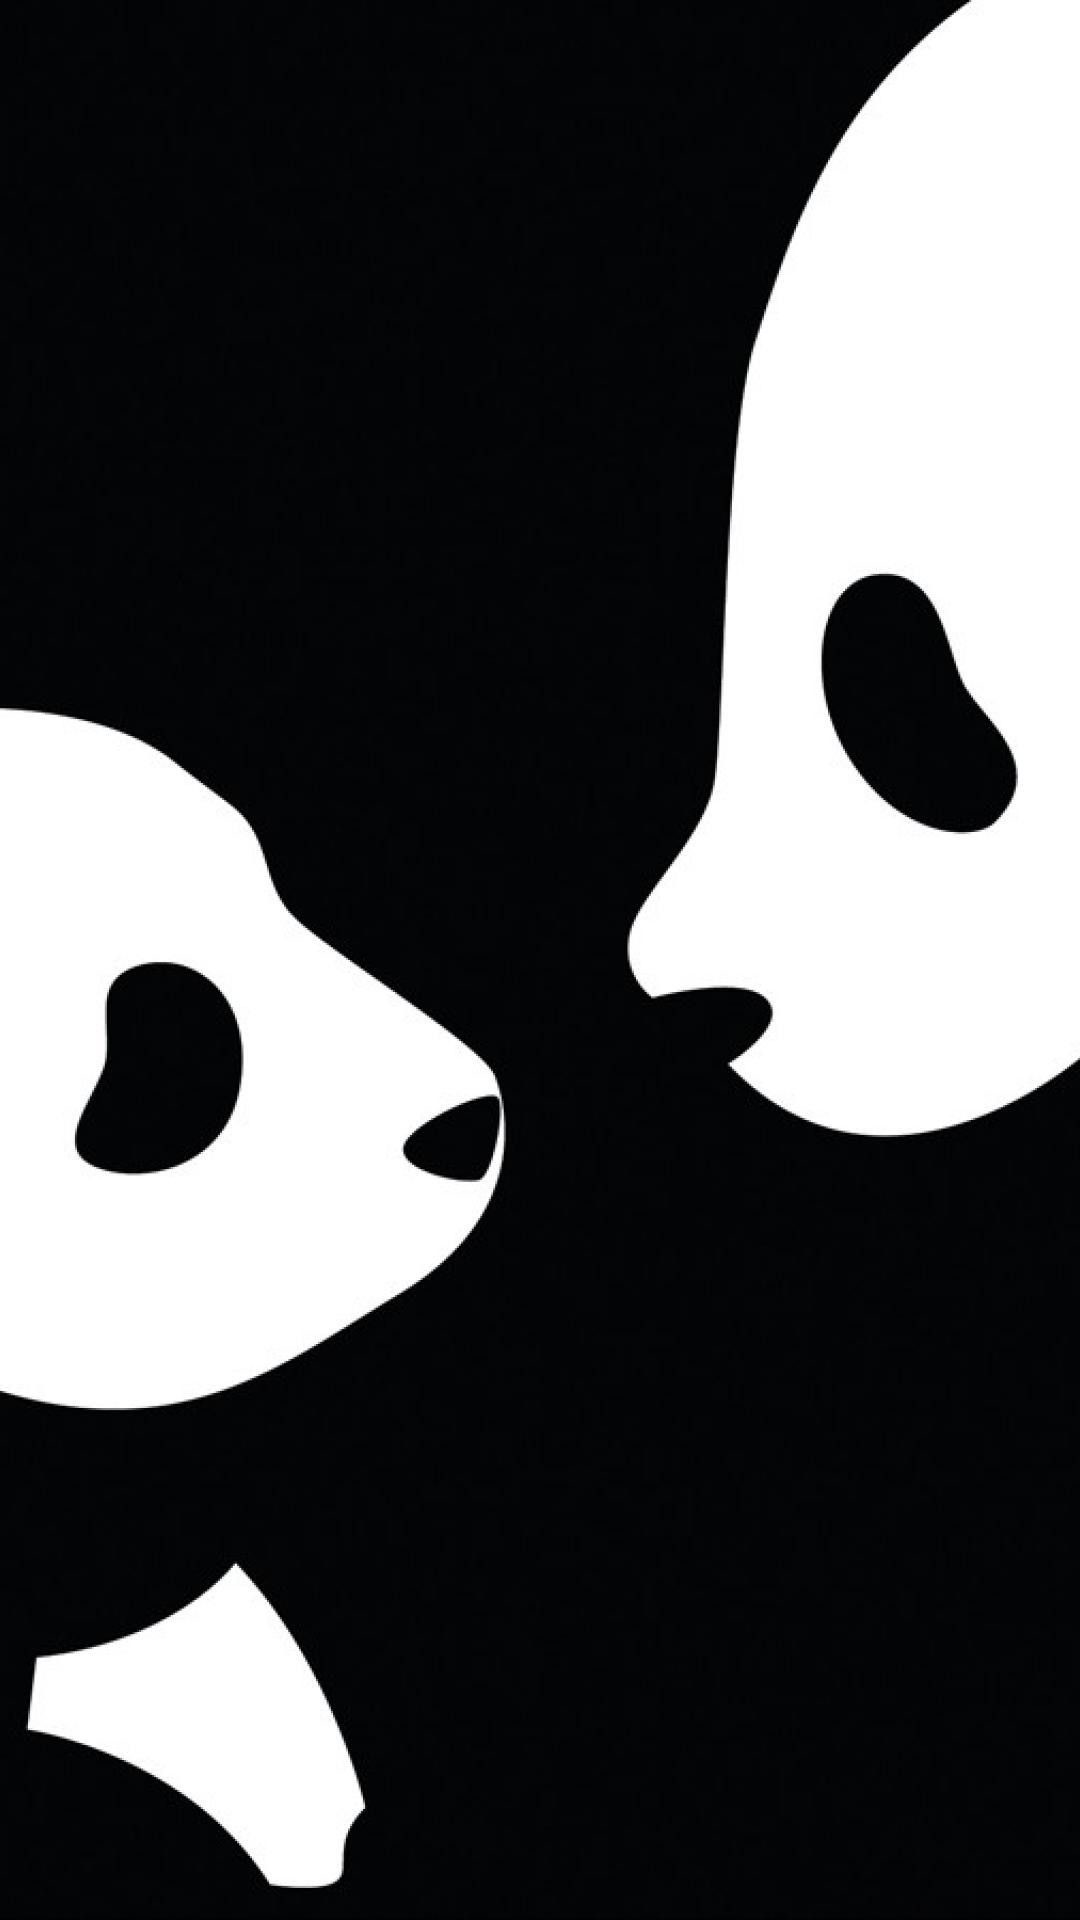 Res: 1080x1920, Black and White Panda iPhone Wallpaper - Best iPhone Wallpaper